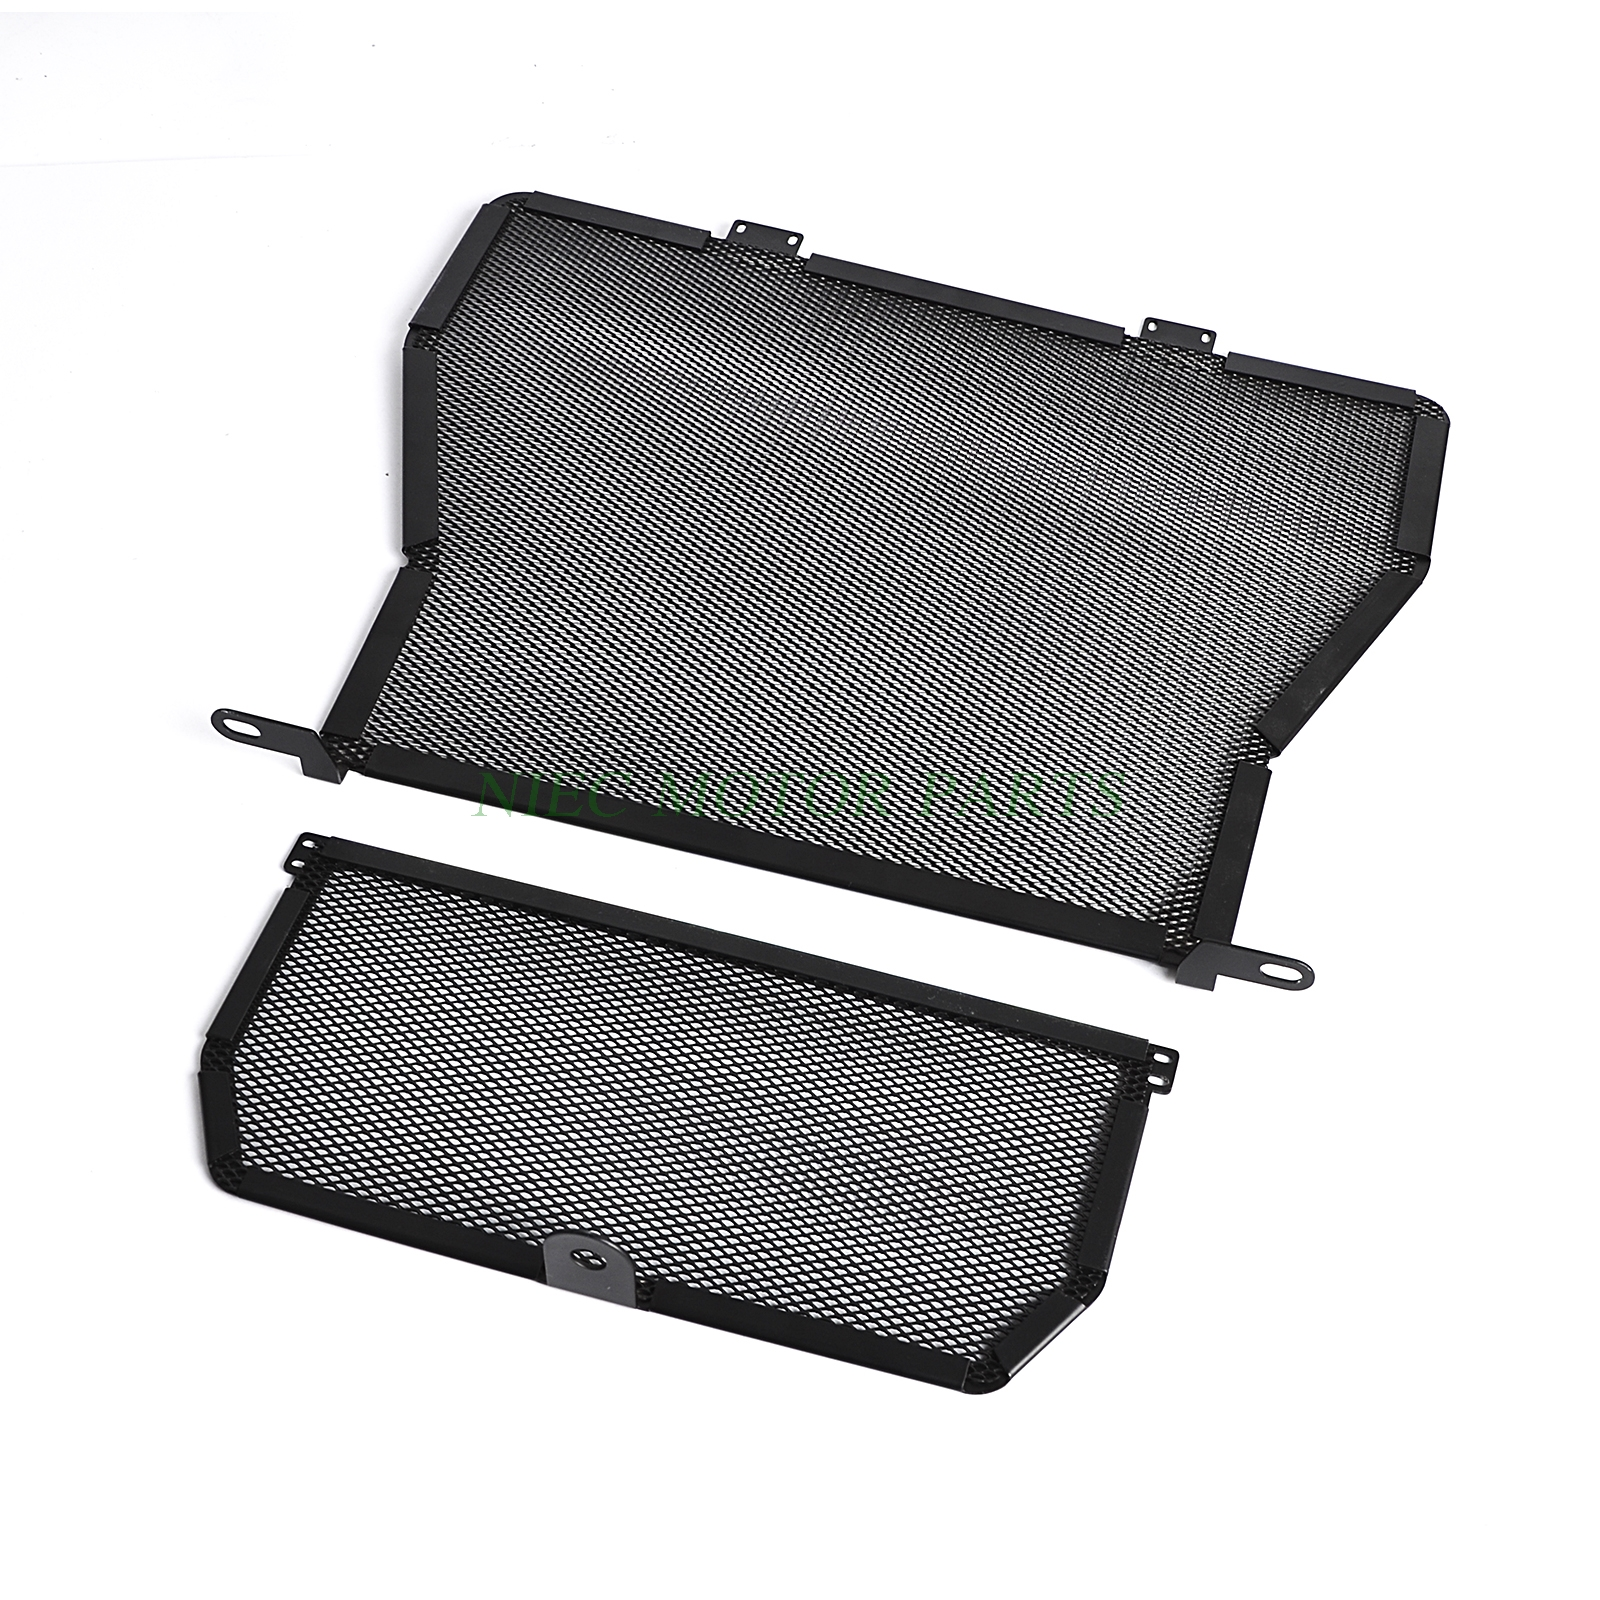 Motorcycle Radiator Grille Oil Cooler Guard Cover Protector For BMW S1000R  2014-2015 S1000RR 2010-2016 motorcycle radiator grill oil cooler guard cover protector for 2009 2010 2011 2012 2013 2014 2015 bmw s1000rr s1000 rr abs k46